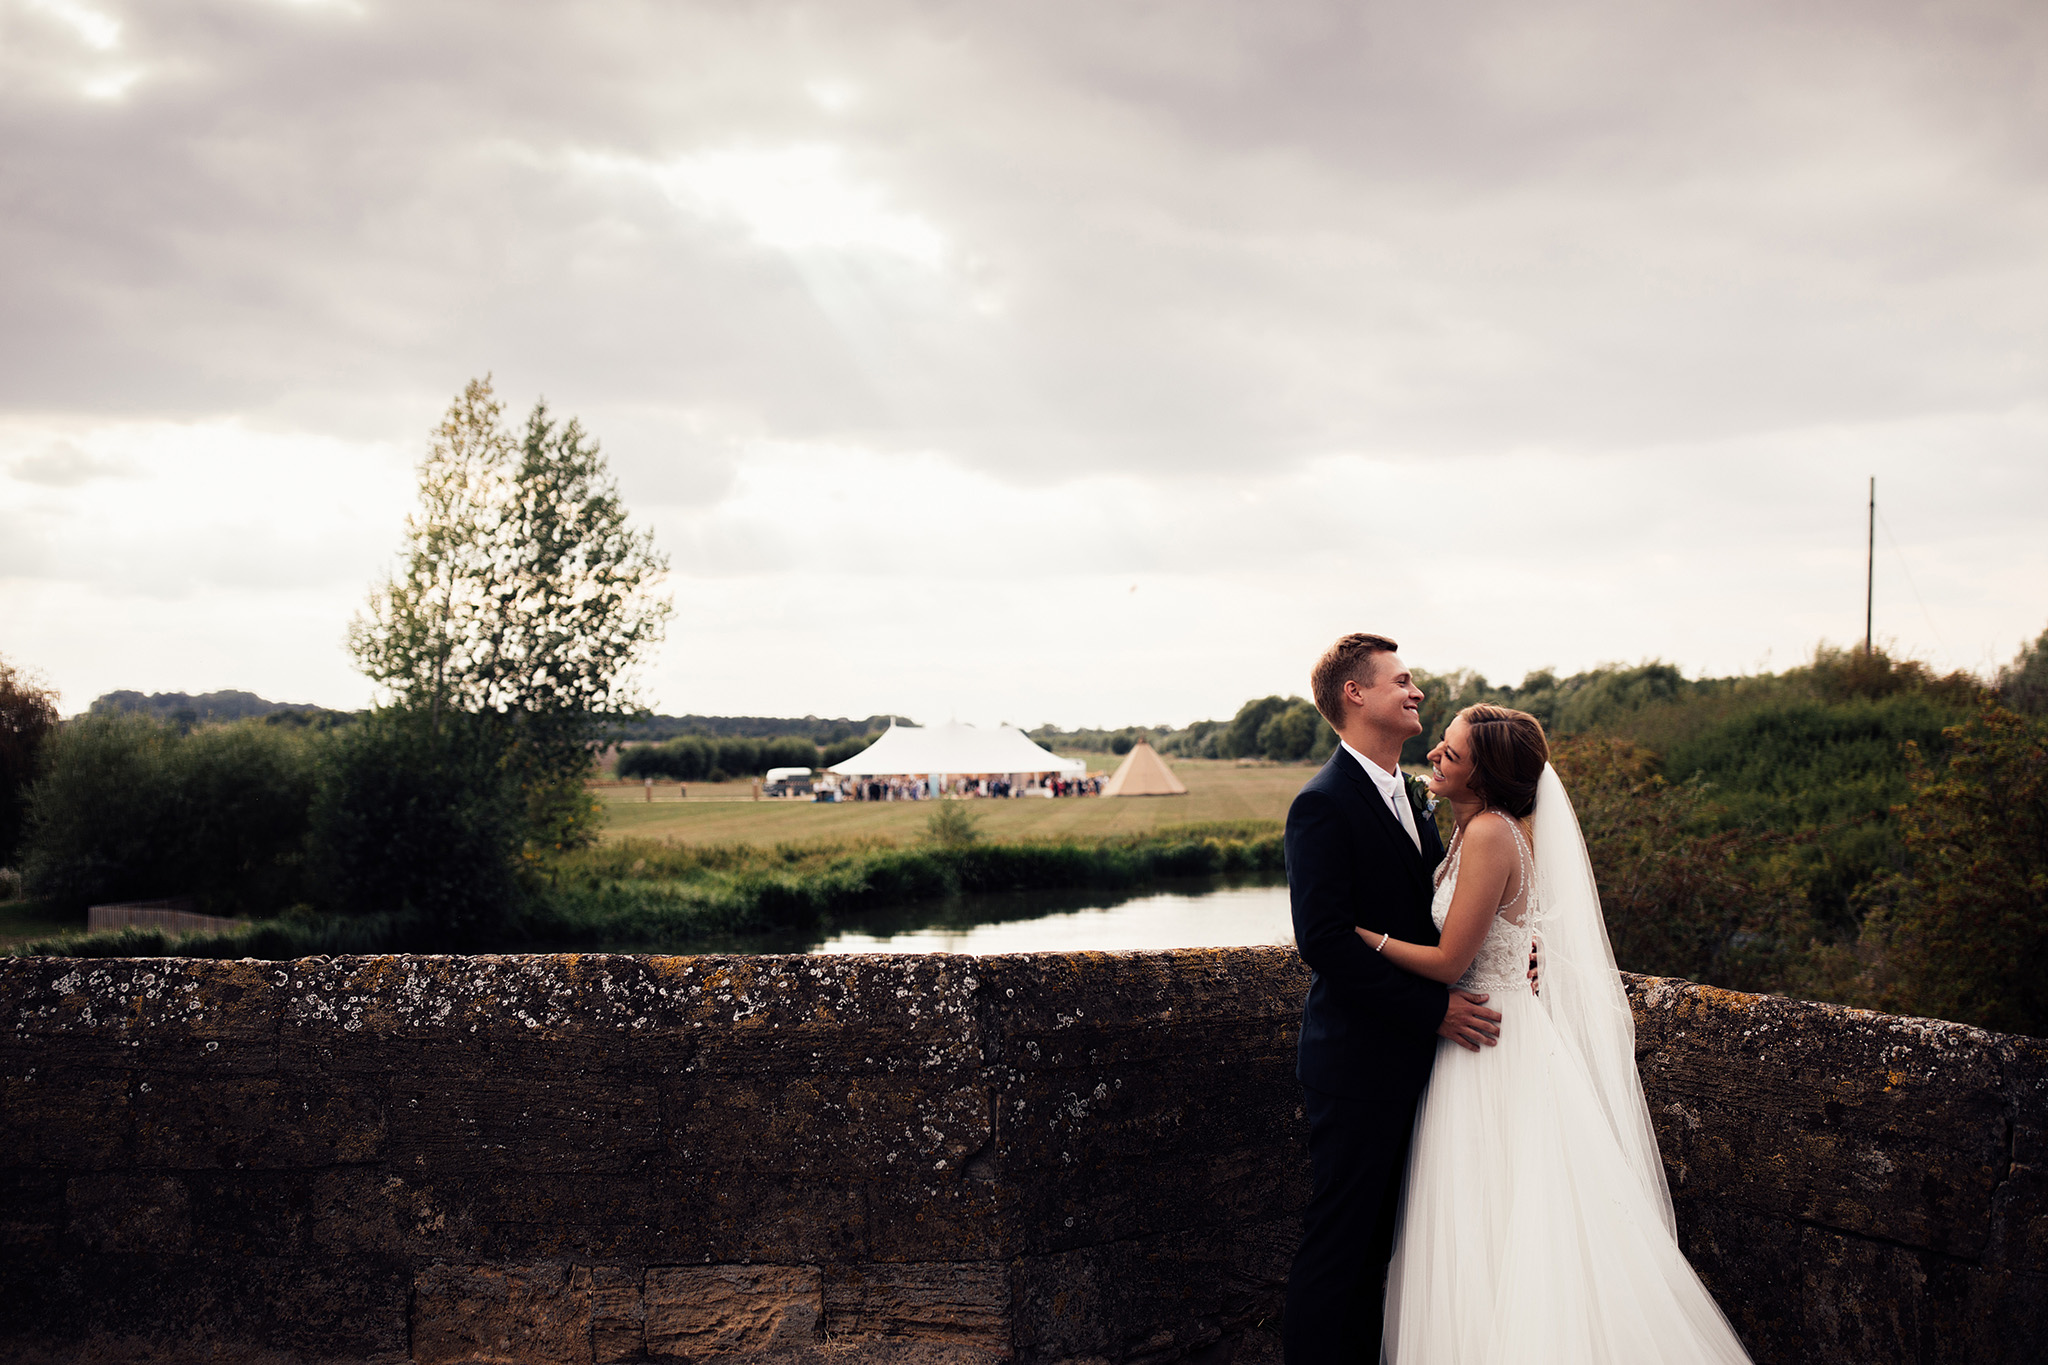 PapaKåta Sperry Wedding in Oxfordshire by Harry Michael Photography- The new Mr & Mrs